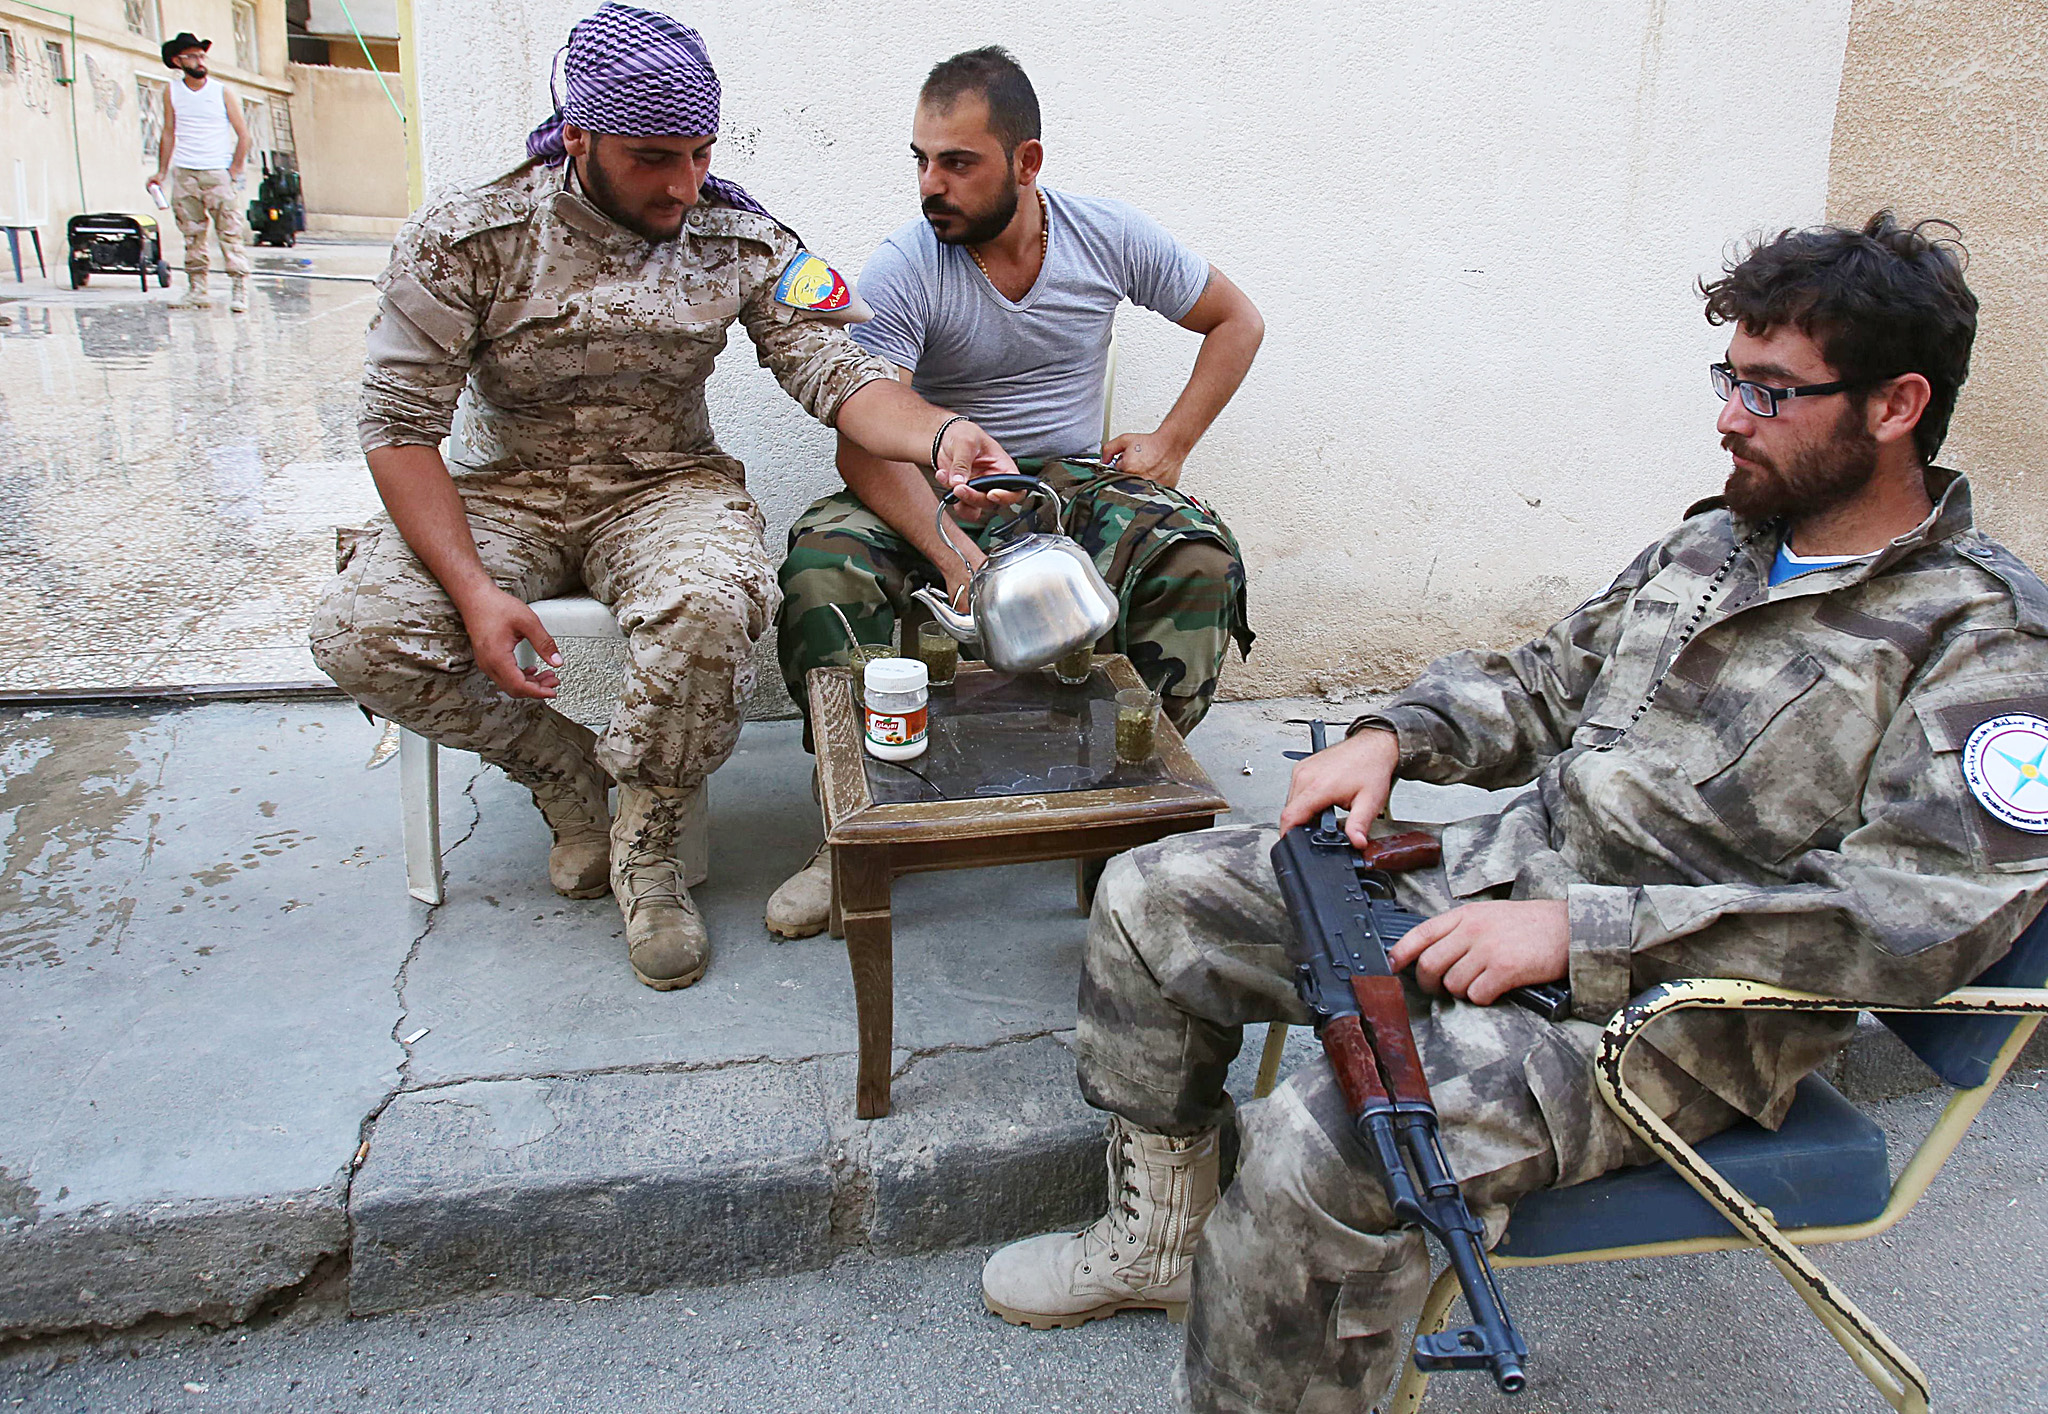 Members of the Assyrian Gozarto Protecti...Members of the Assyrian Gozarto Protection Forces (GPF), consisting of Sutoro militia, a pro-government Syriac Christian movement, and other Assyrian fighters rest and drink tea before heading to reinforce pro-government forces on the front line in the battle against the Islamic State (IS) group, in the northeastern Syrian province of Hasakeh on July 13, 2015. AFP PHOTO / YOUSSEF KARWASHANYOUSSEF KARWASHAN/AFP/Getty Images